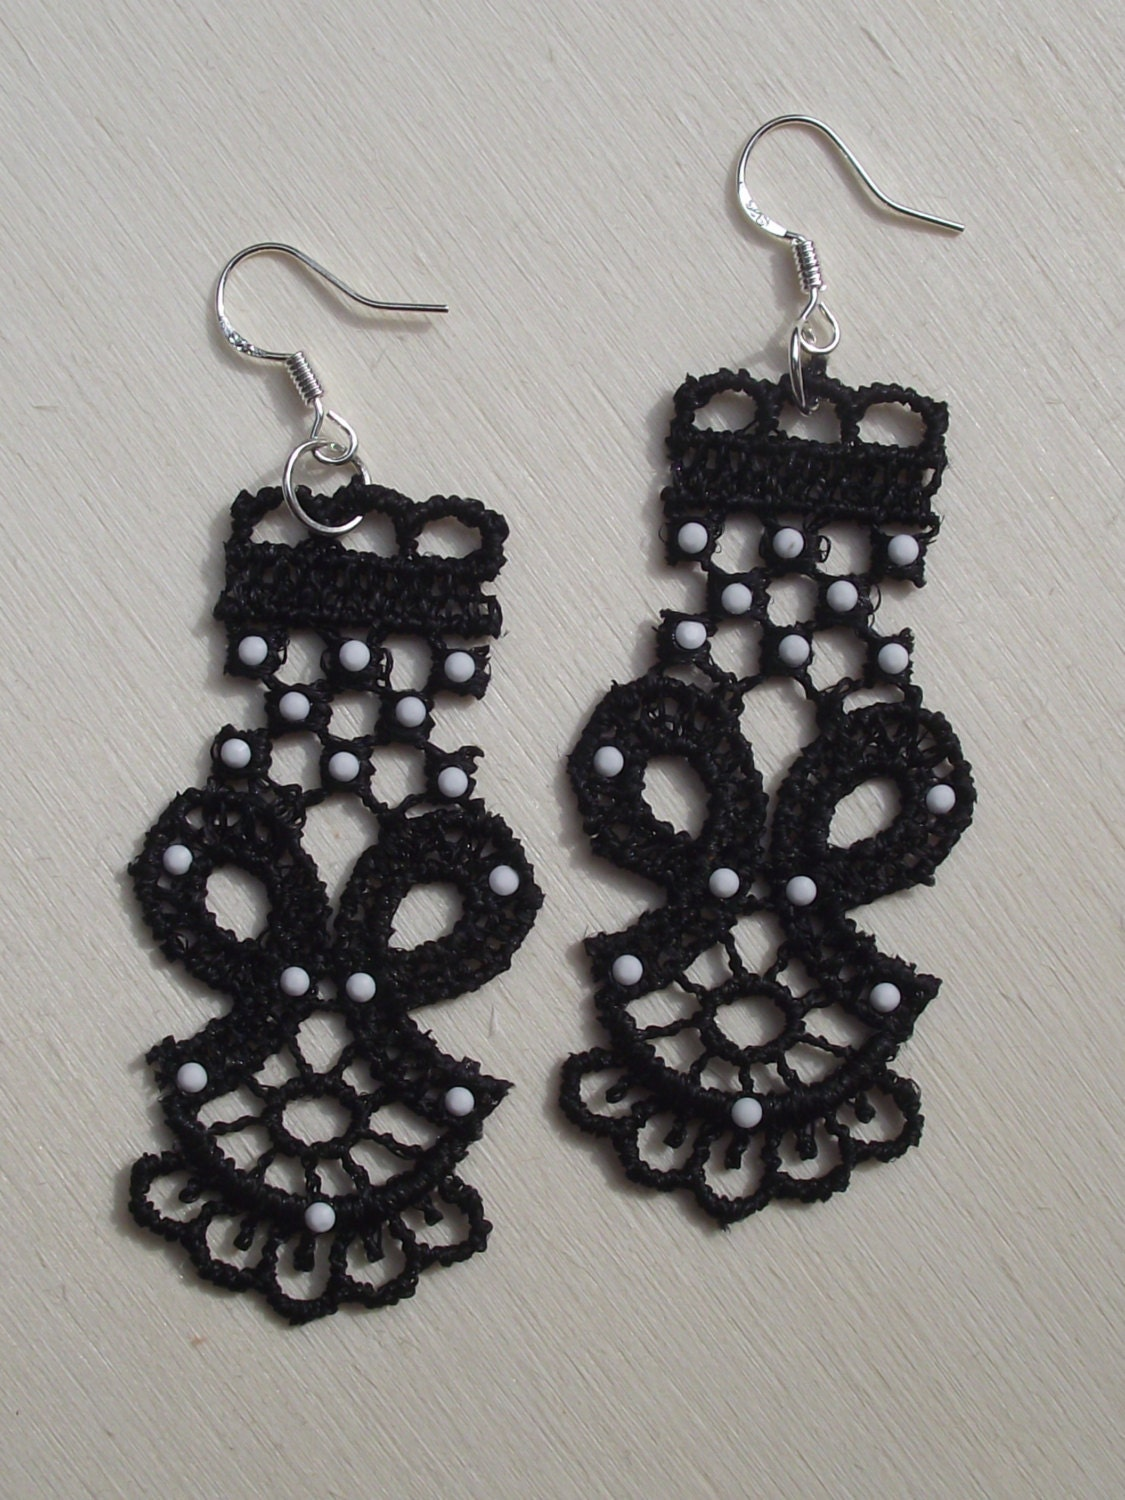 Black Lace Earrings BiwisLab on Etsy